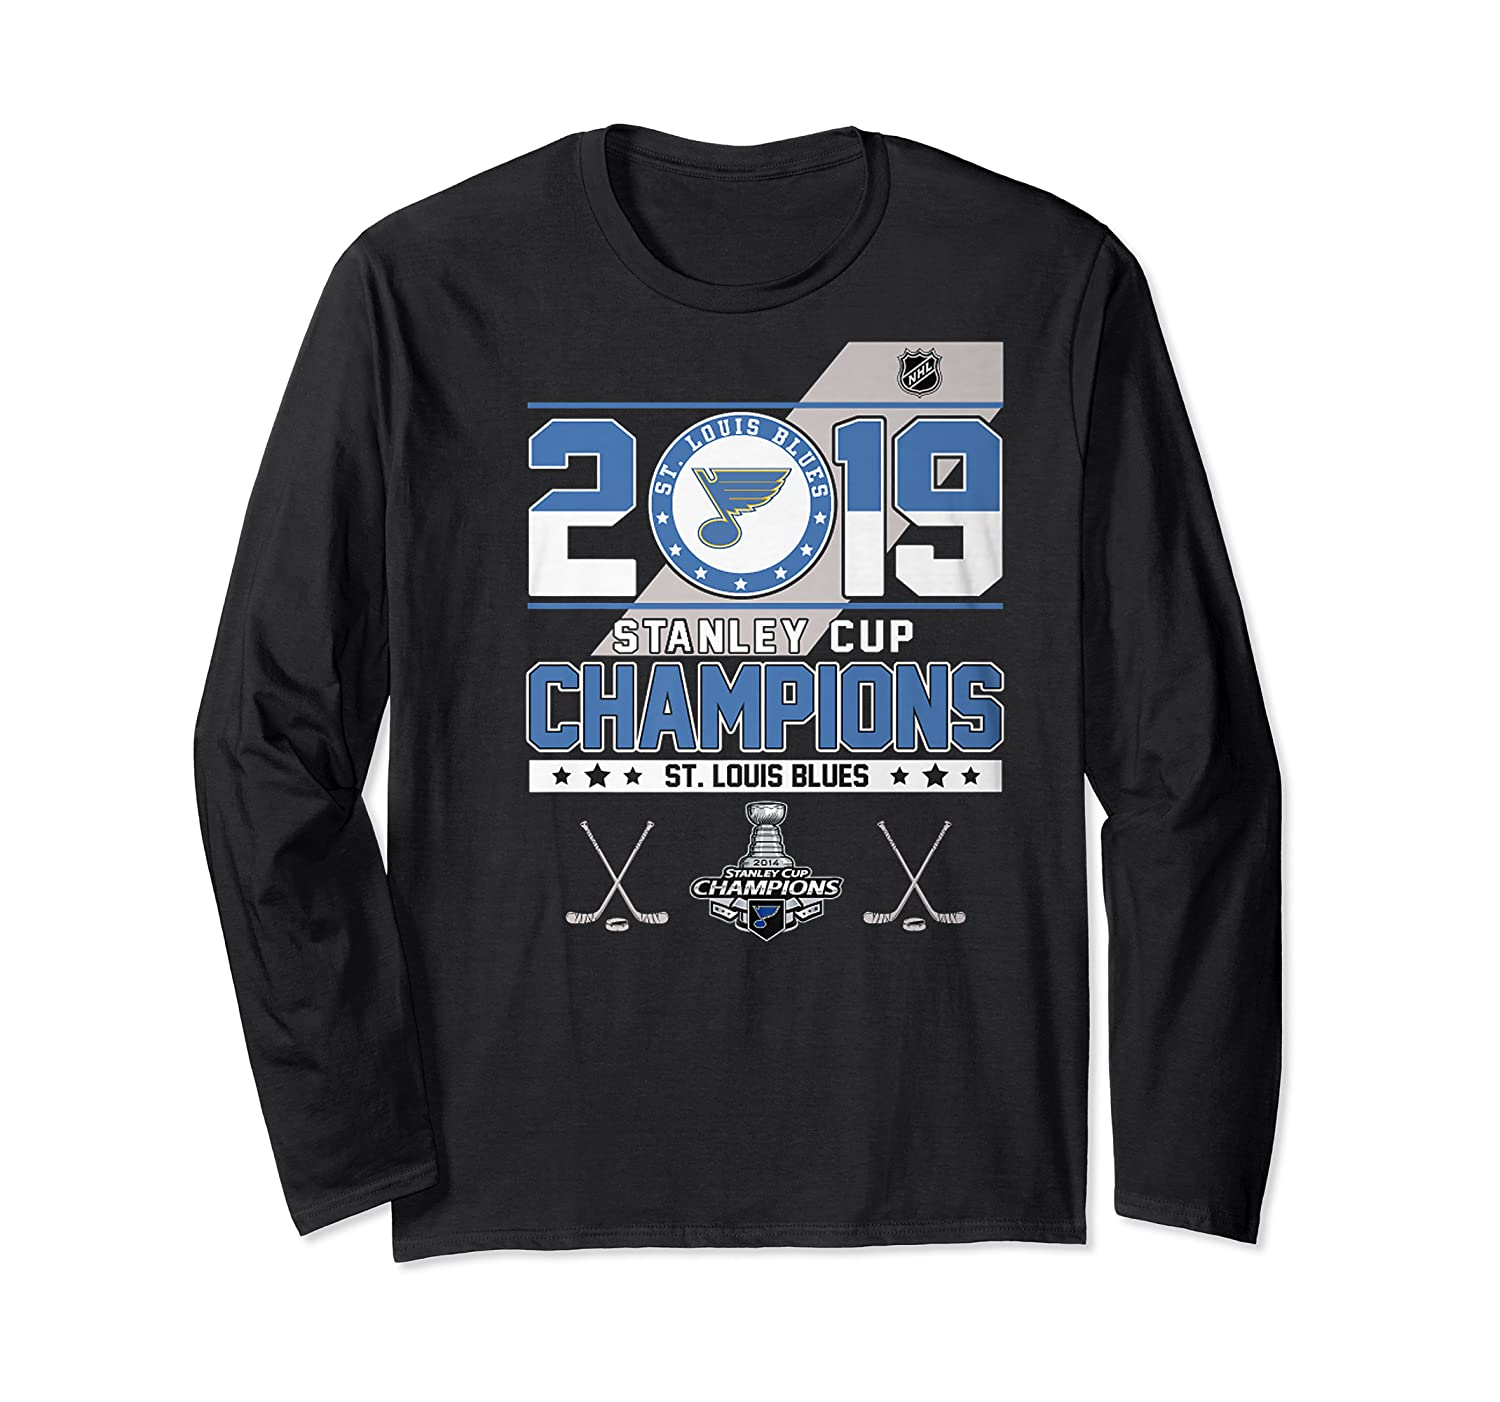 Stanley St Louis Cup Blues Champions 2019 Best For Fans Shirts Long Sleeve T-shirt